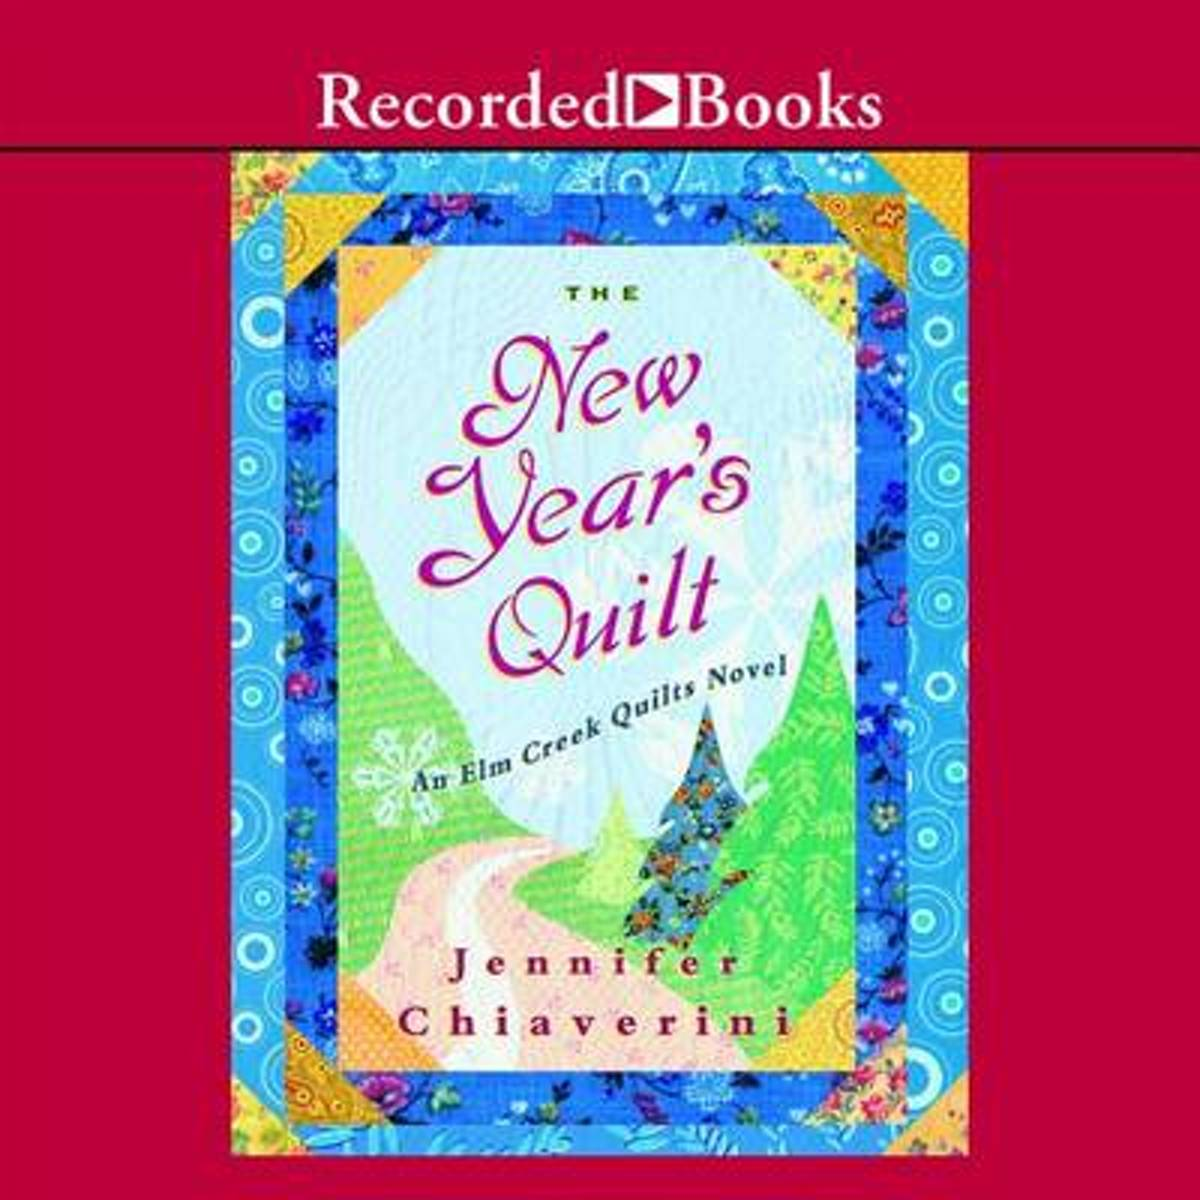 The New Year's Quilt